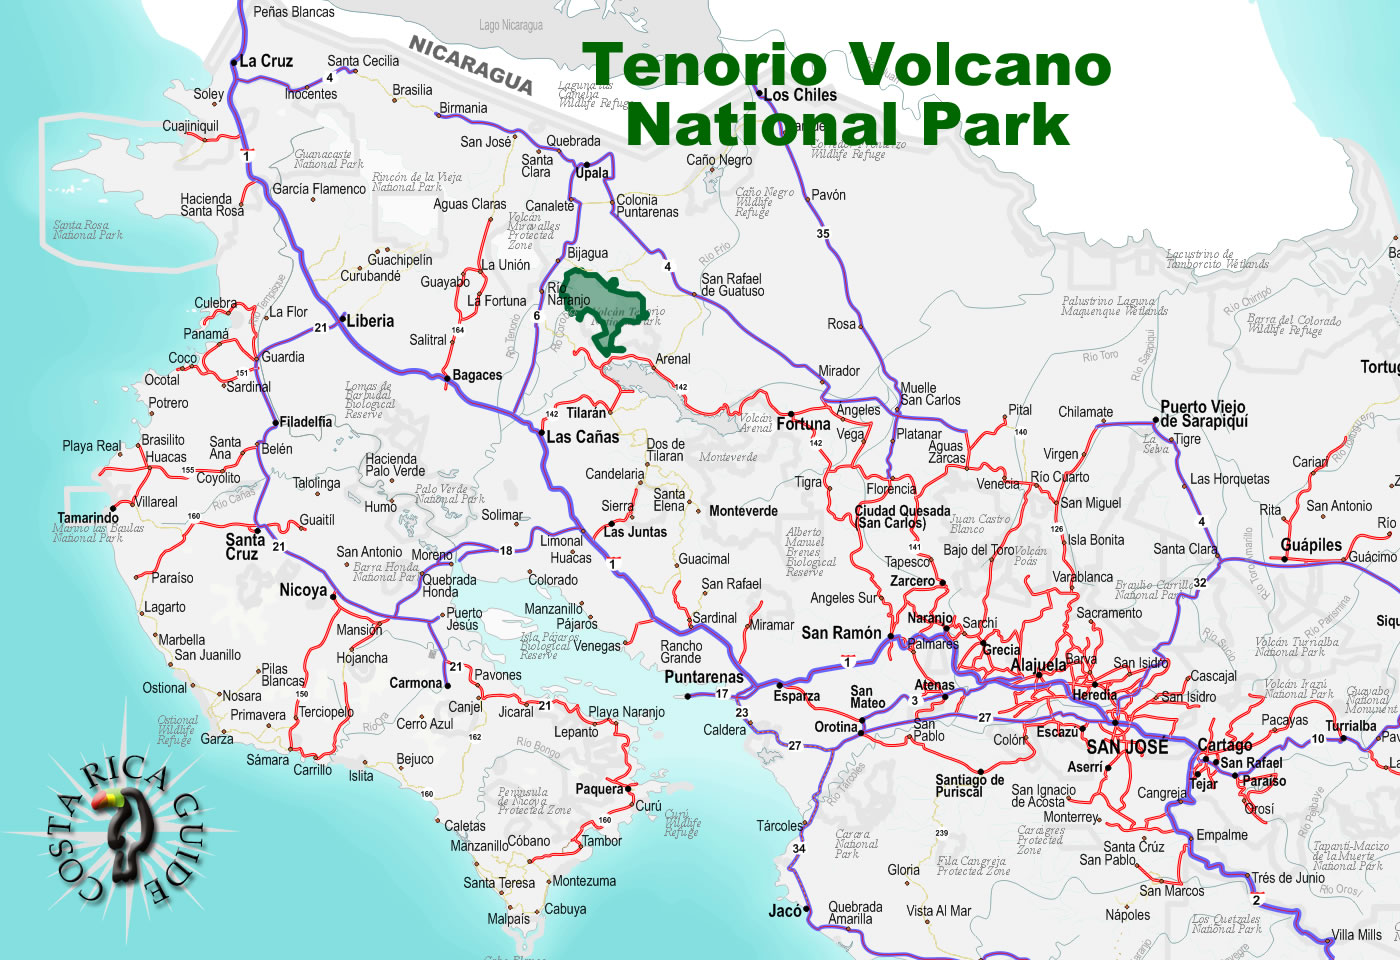 rio celeste costa rica map Tenorio Volcano National Park rio celeste costa rica map